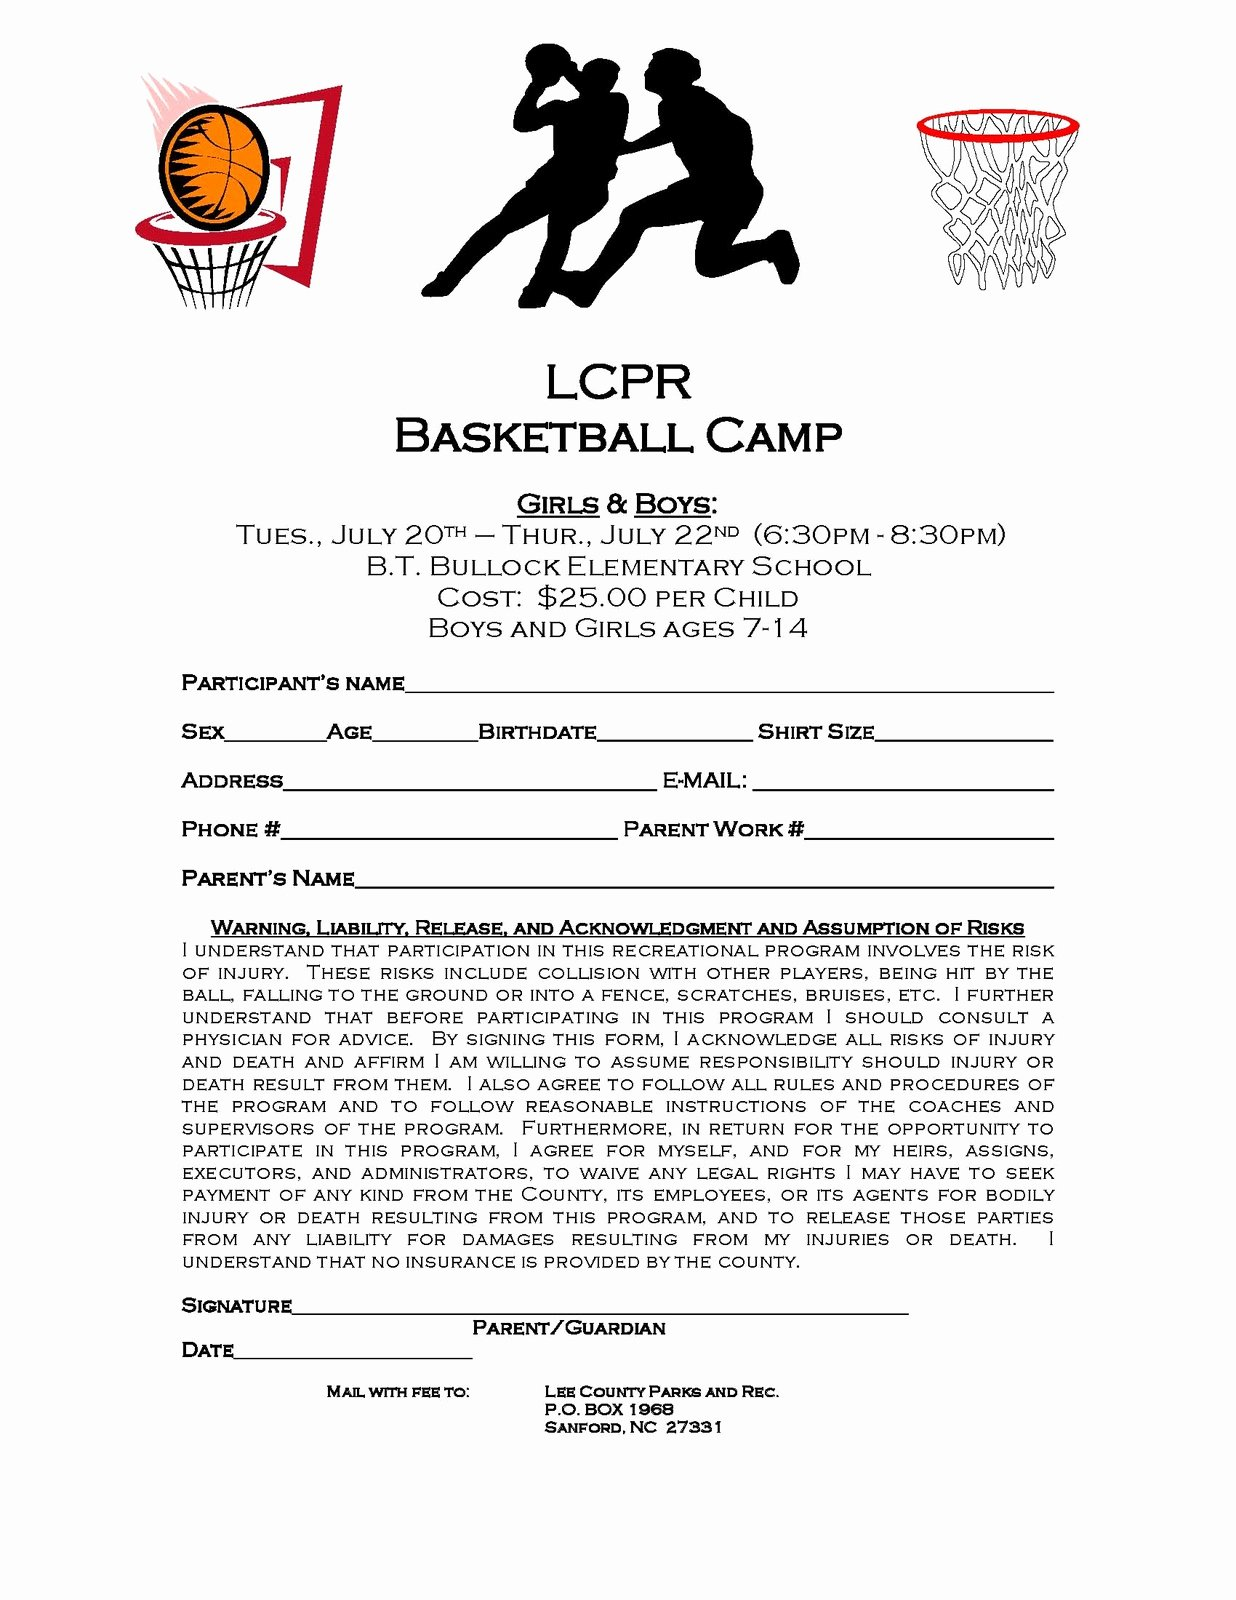 Camp Registration form Template Fresh Lee County Government Lcpr Basketball Camp